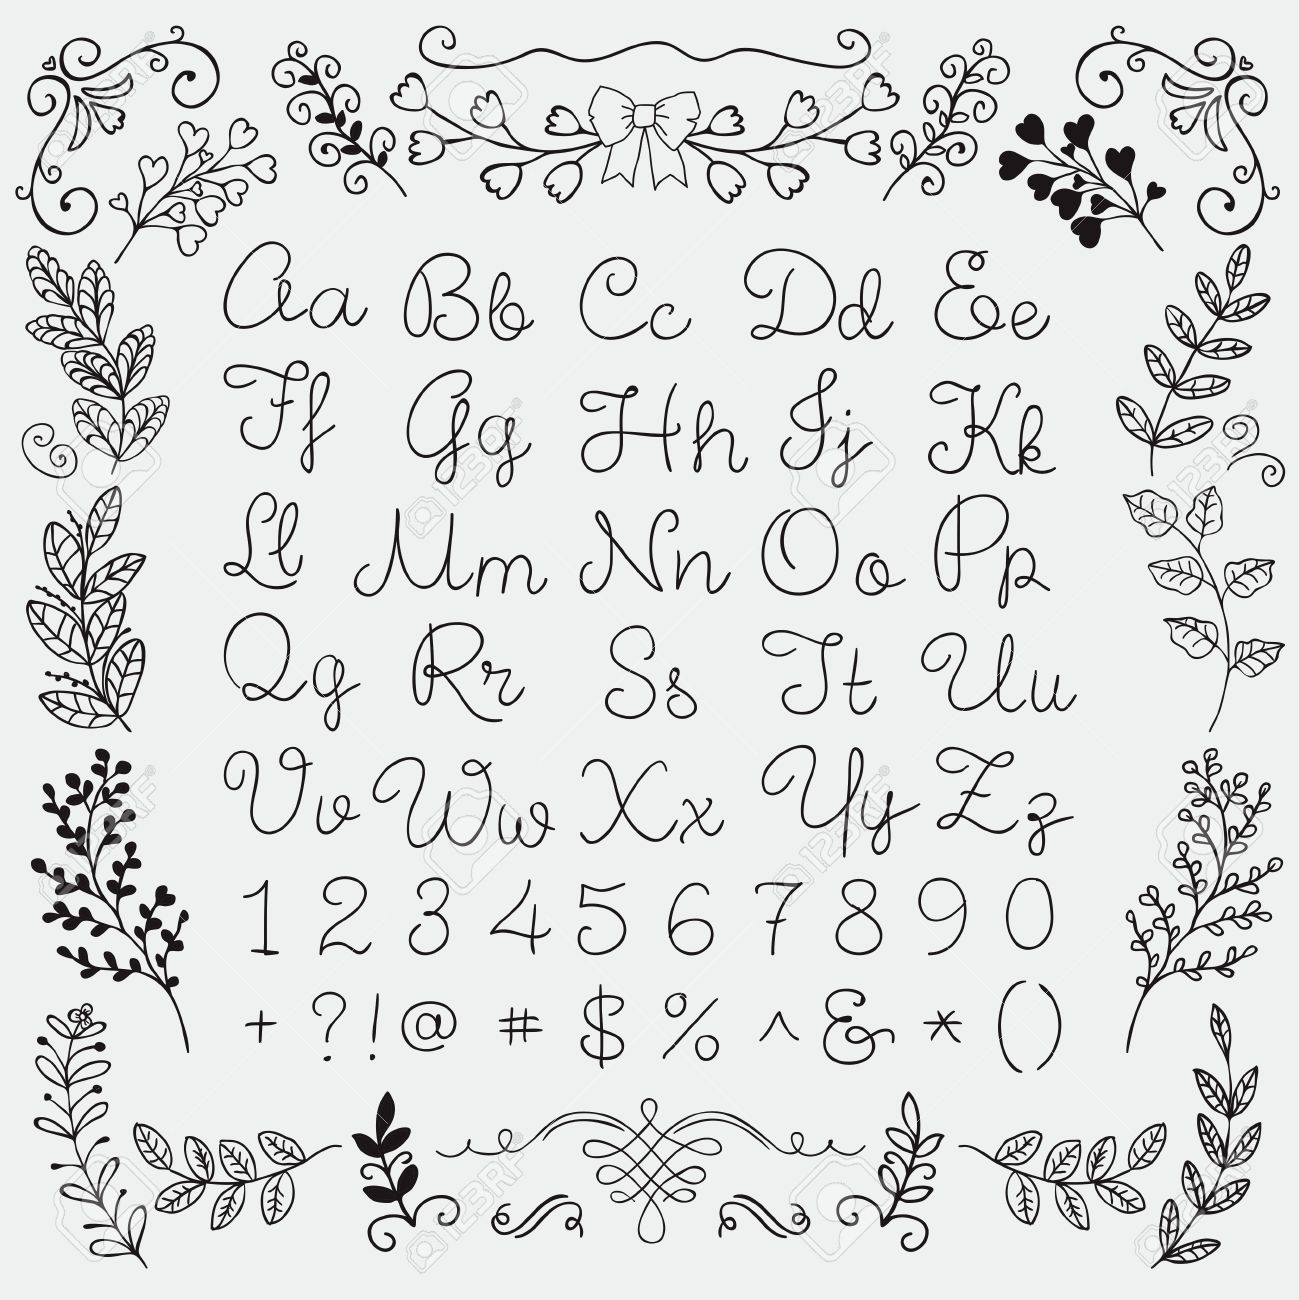 english letters and symbols black hand drawn english alphabet letters numbers and symbols on white